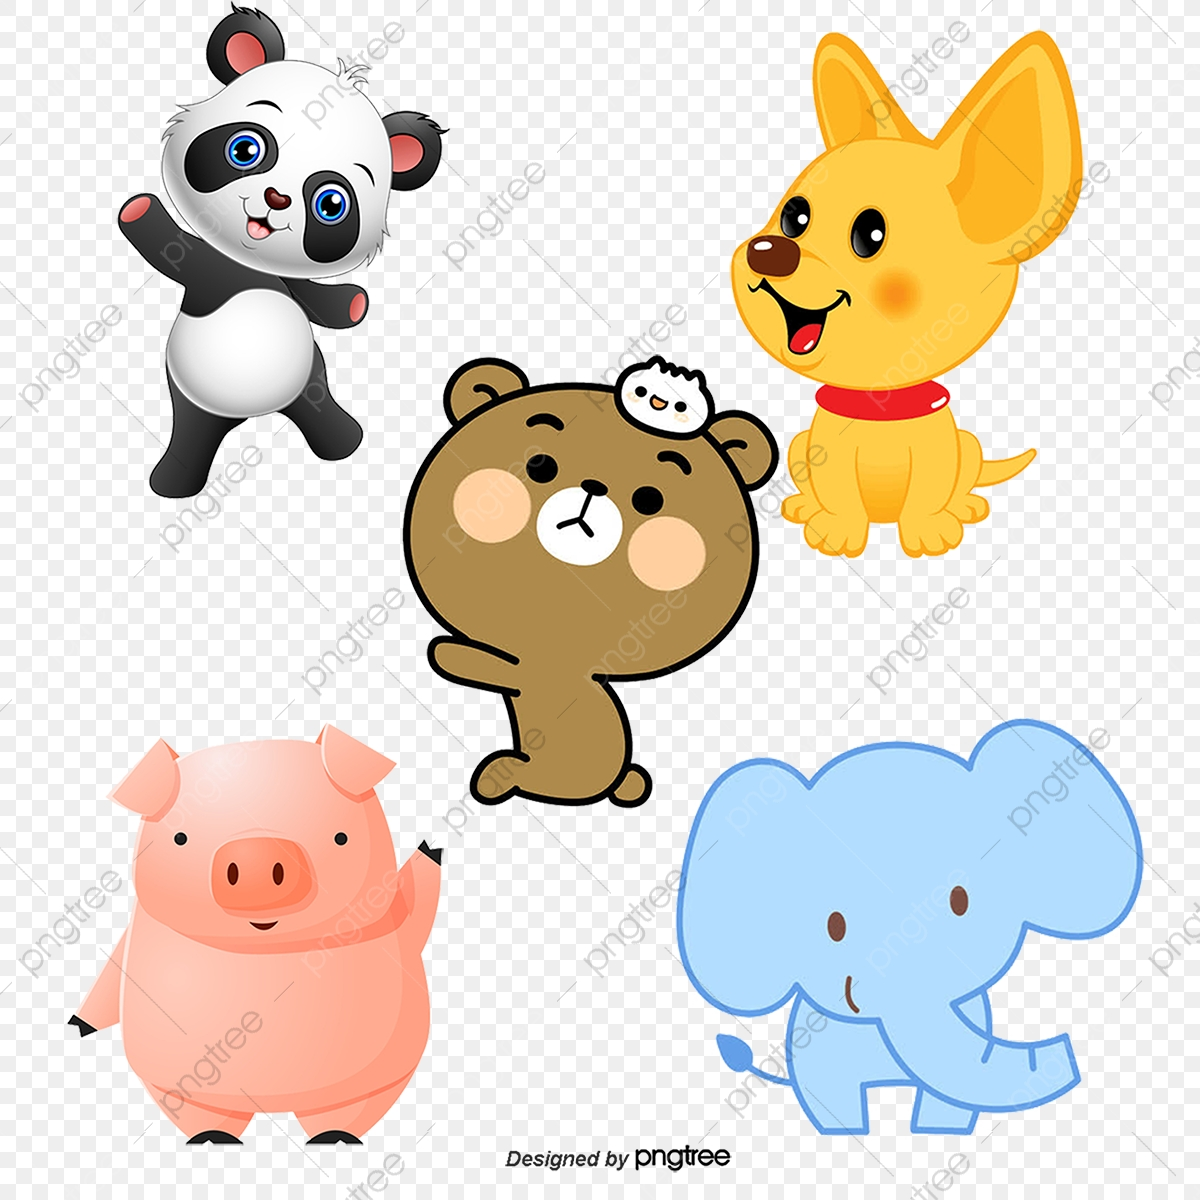 Animal Vector 31000 Animal Graphic Resources For Free Download